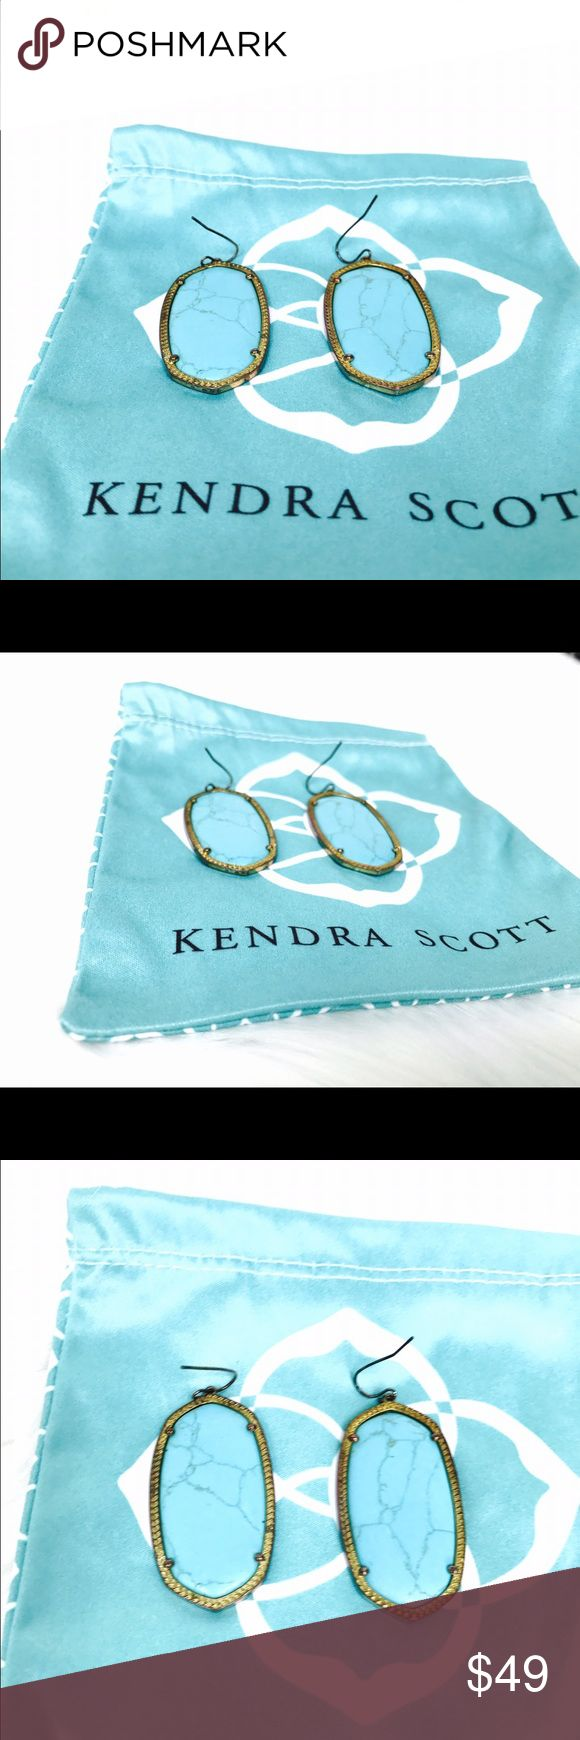 Kendra Scott Danielle Earrings in Turquoise Goregous dangling earrings by Karen Scott. Bought them few years ago. Worn maybe 2x and has been stored in its pouch. It tarnished but it has that antiqued finish that  it will surely rock your  boho chic outfit. Kendra Scott Jewelry Earrings